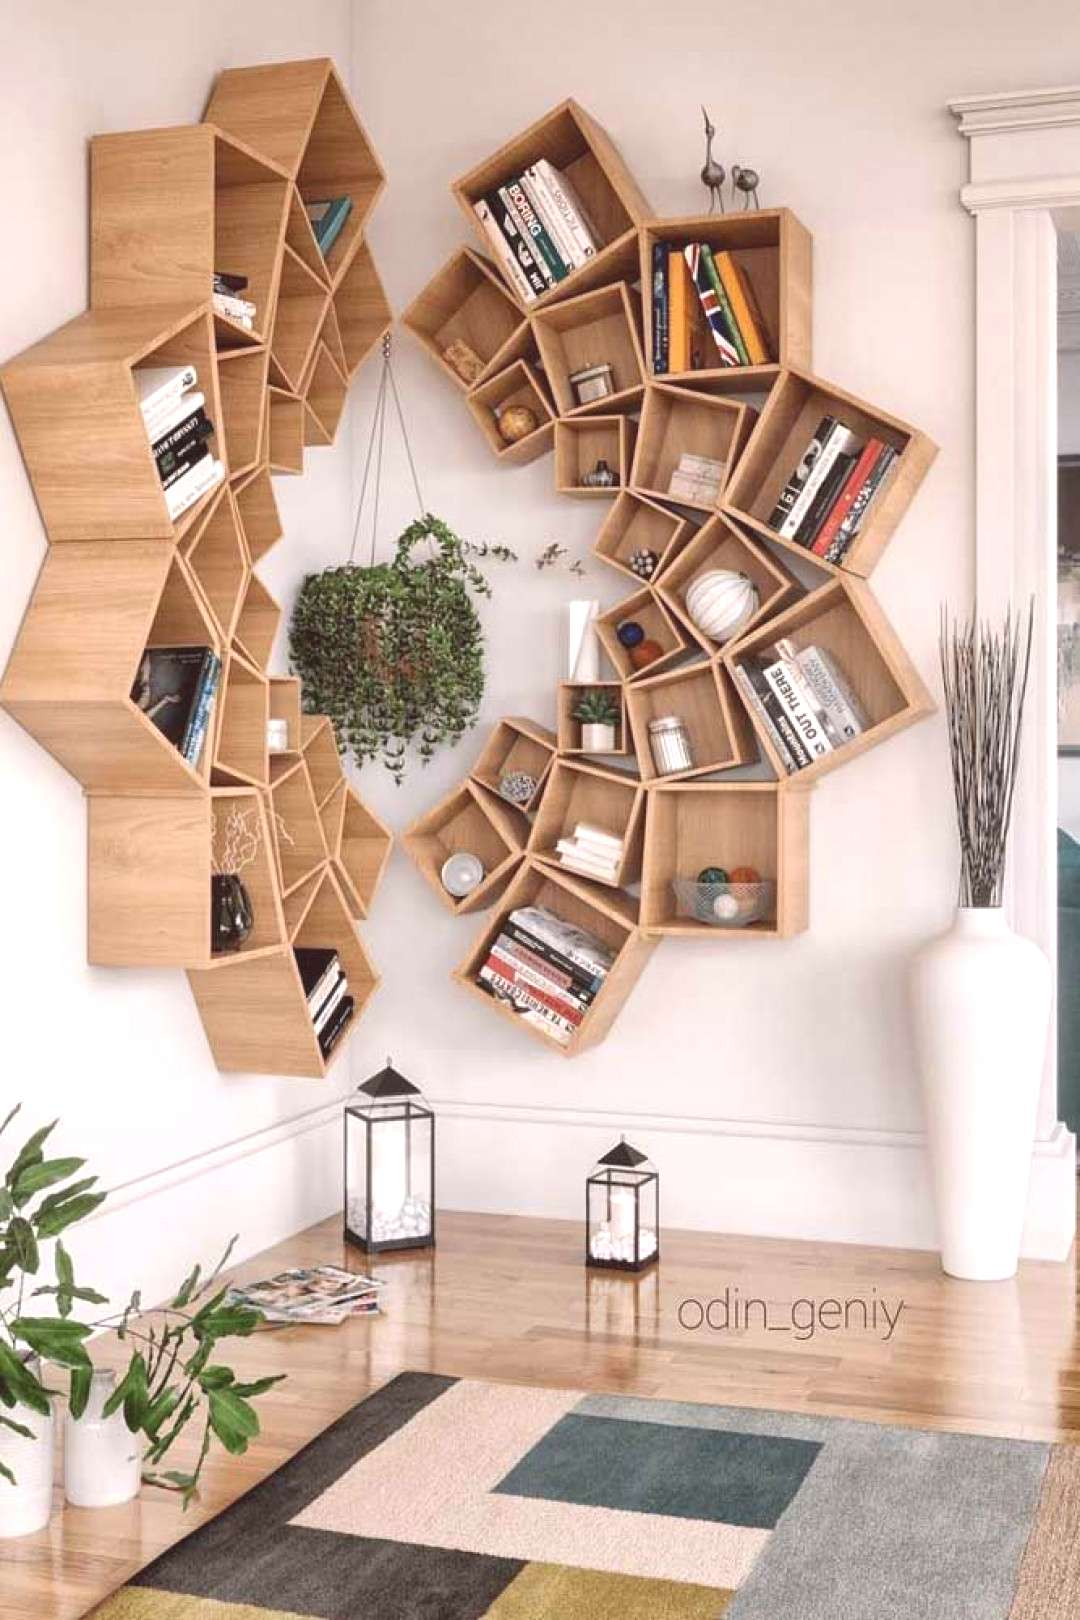 A great way to provide some extra storage, but make it look unqiue in any room.